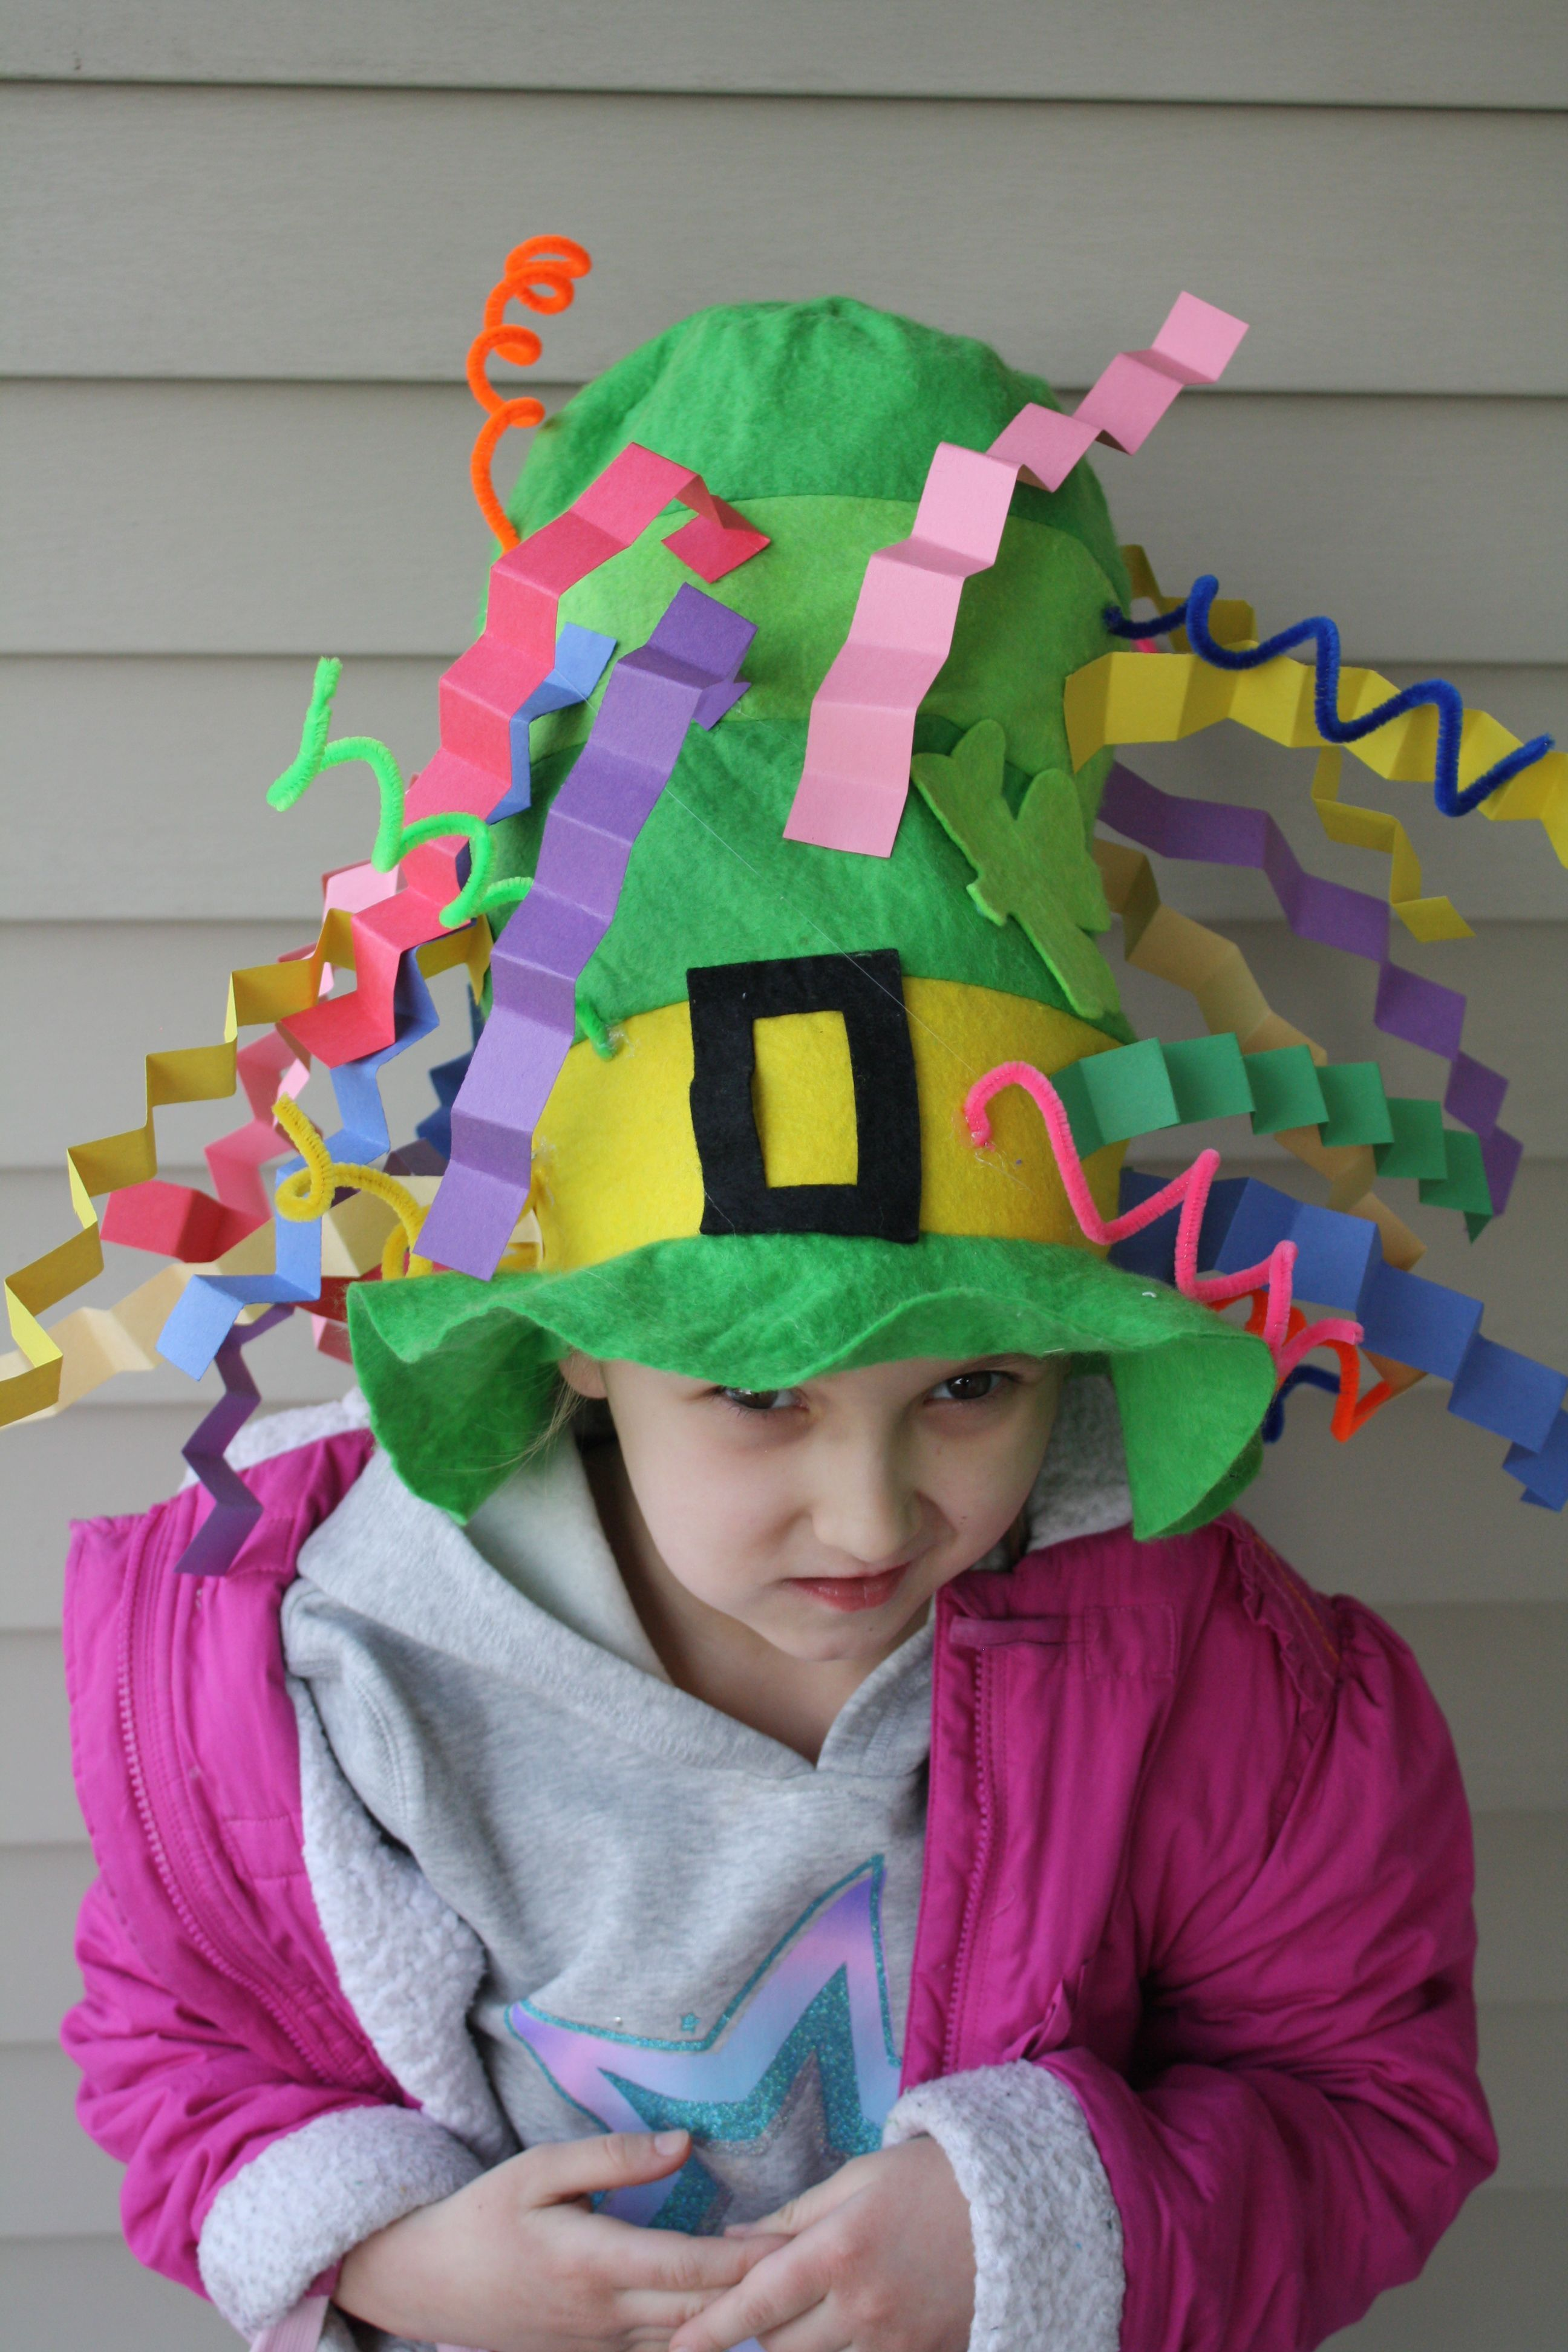 crazy hat day | Crazy Hat Day Ideas for School #crazyhatdayideas crazy hat day | Crazy Hat Day Ideas for School #crazyhatdayideas crazy hat day | Crazy Hat Day Ideas for School #crazyhatdayideas crazy hat day | Crazy Hat Day Ideas for School #crazyhatdayideas crazy hat day | Crazy Hat Day Ideas for School #crazyhatdayideas crazy hat day | Crazy Hat Day Ideas for School #crazyhatdayideas crazy hat day | Crazy Hat Day Ideas for School #crazyhatdayideas crazy hat day | Crazy Hat Day Ideas for Schoo #crazyhatdayideas